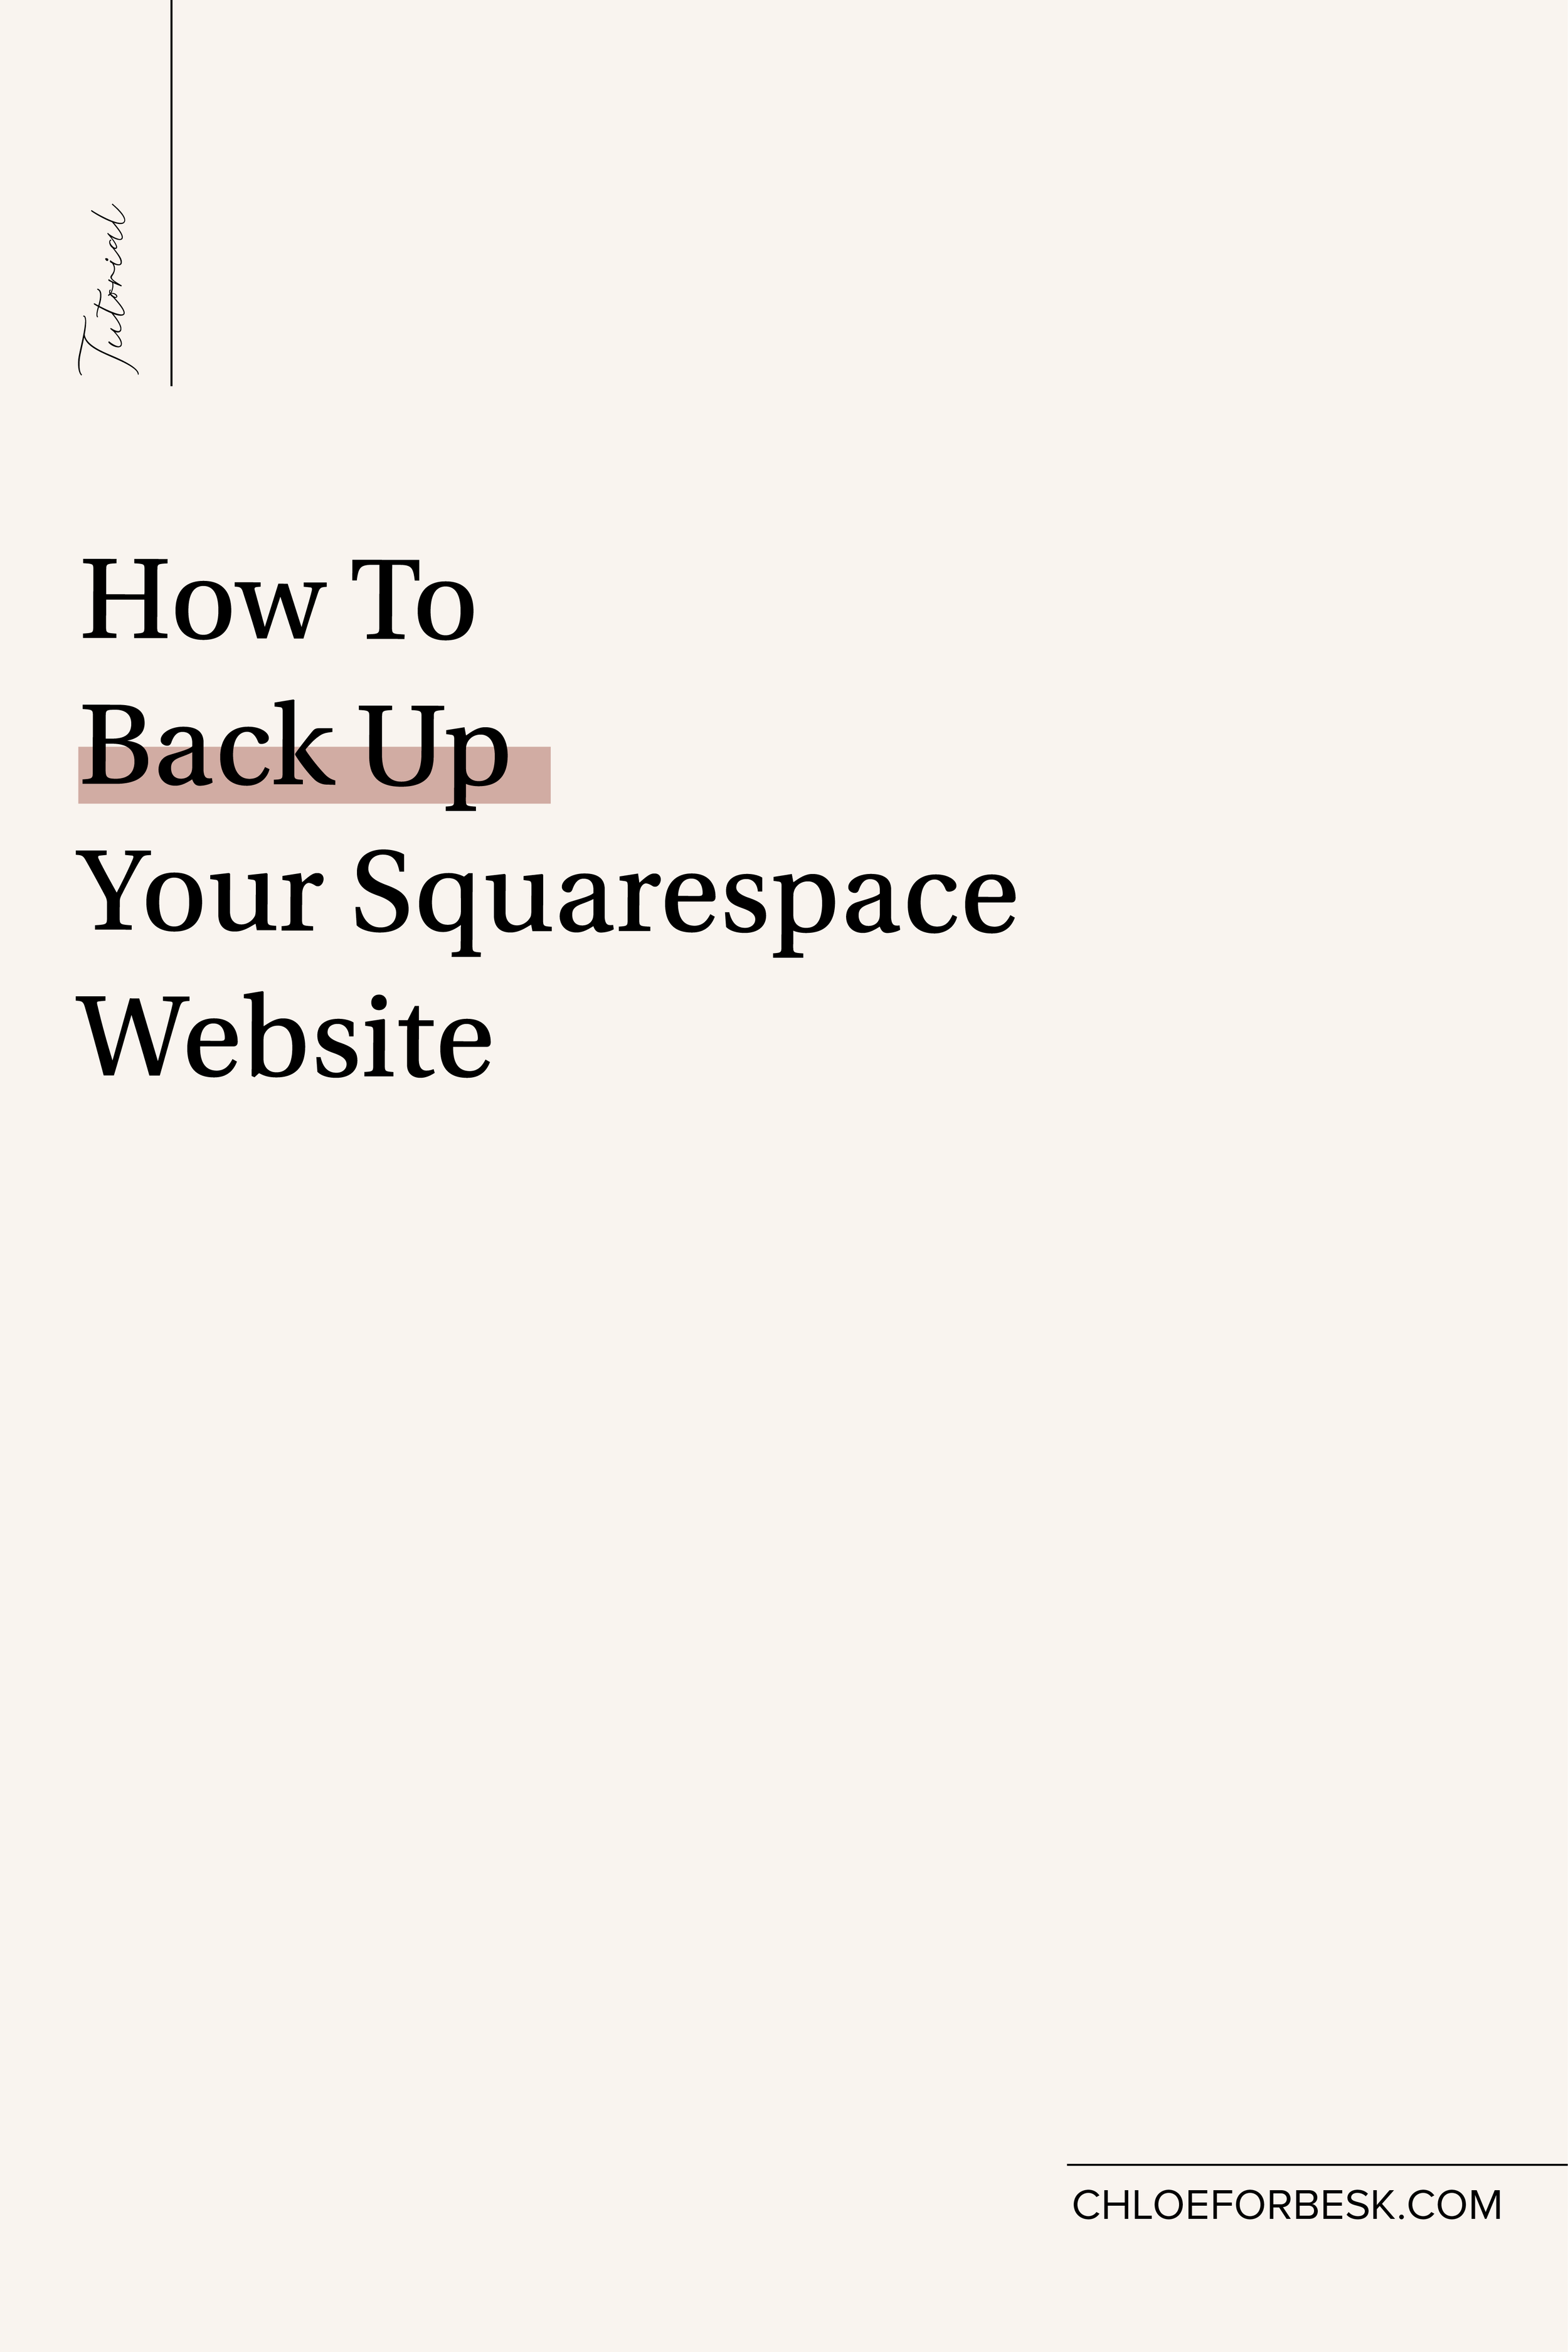 How To Back Up Your Squarespace Website-02.png